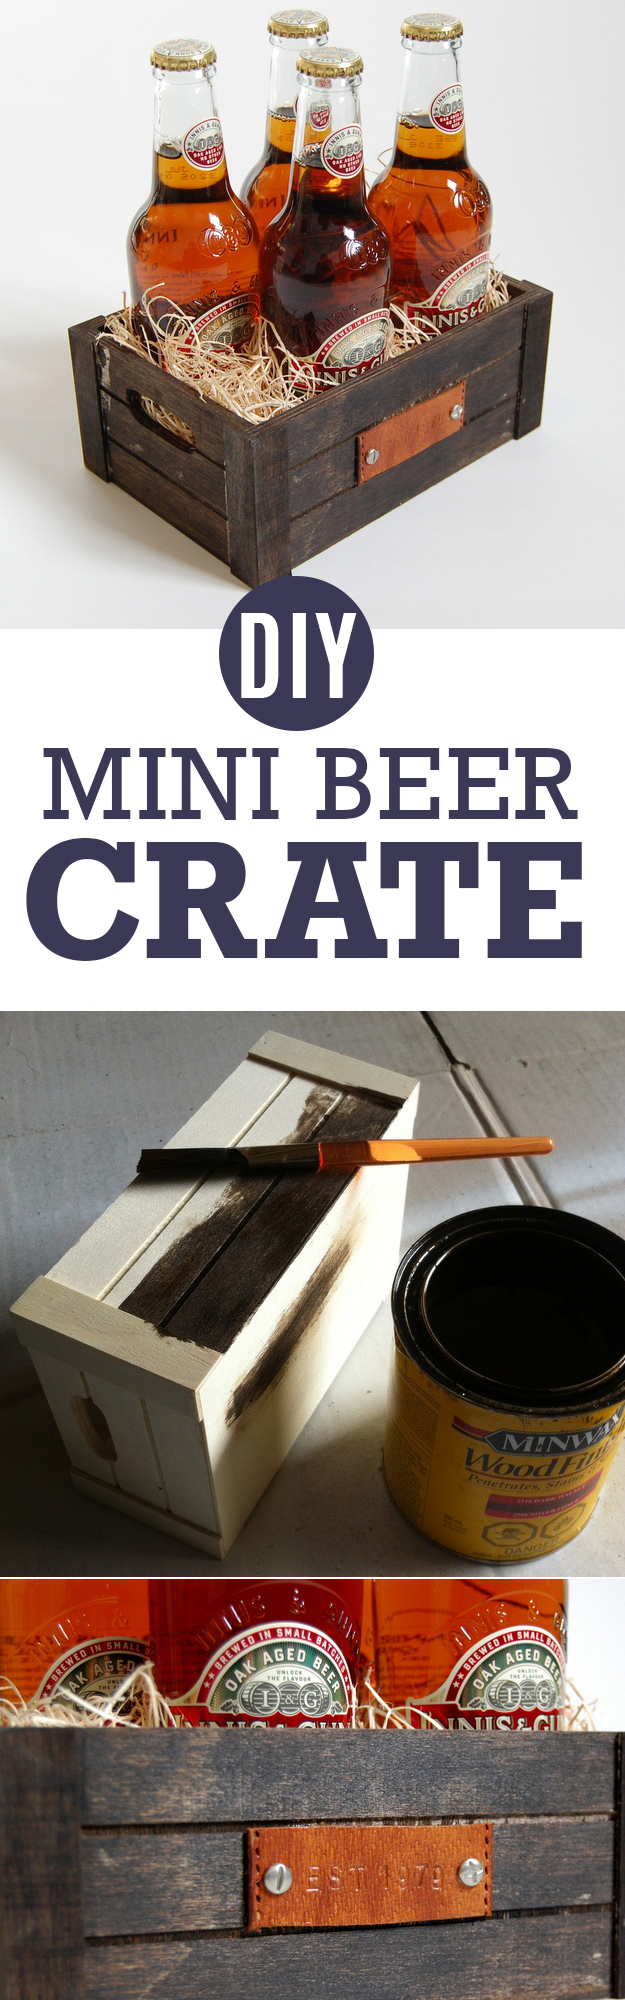 40 Cool DIY Gifts for Men